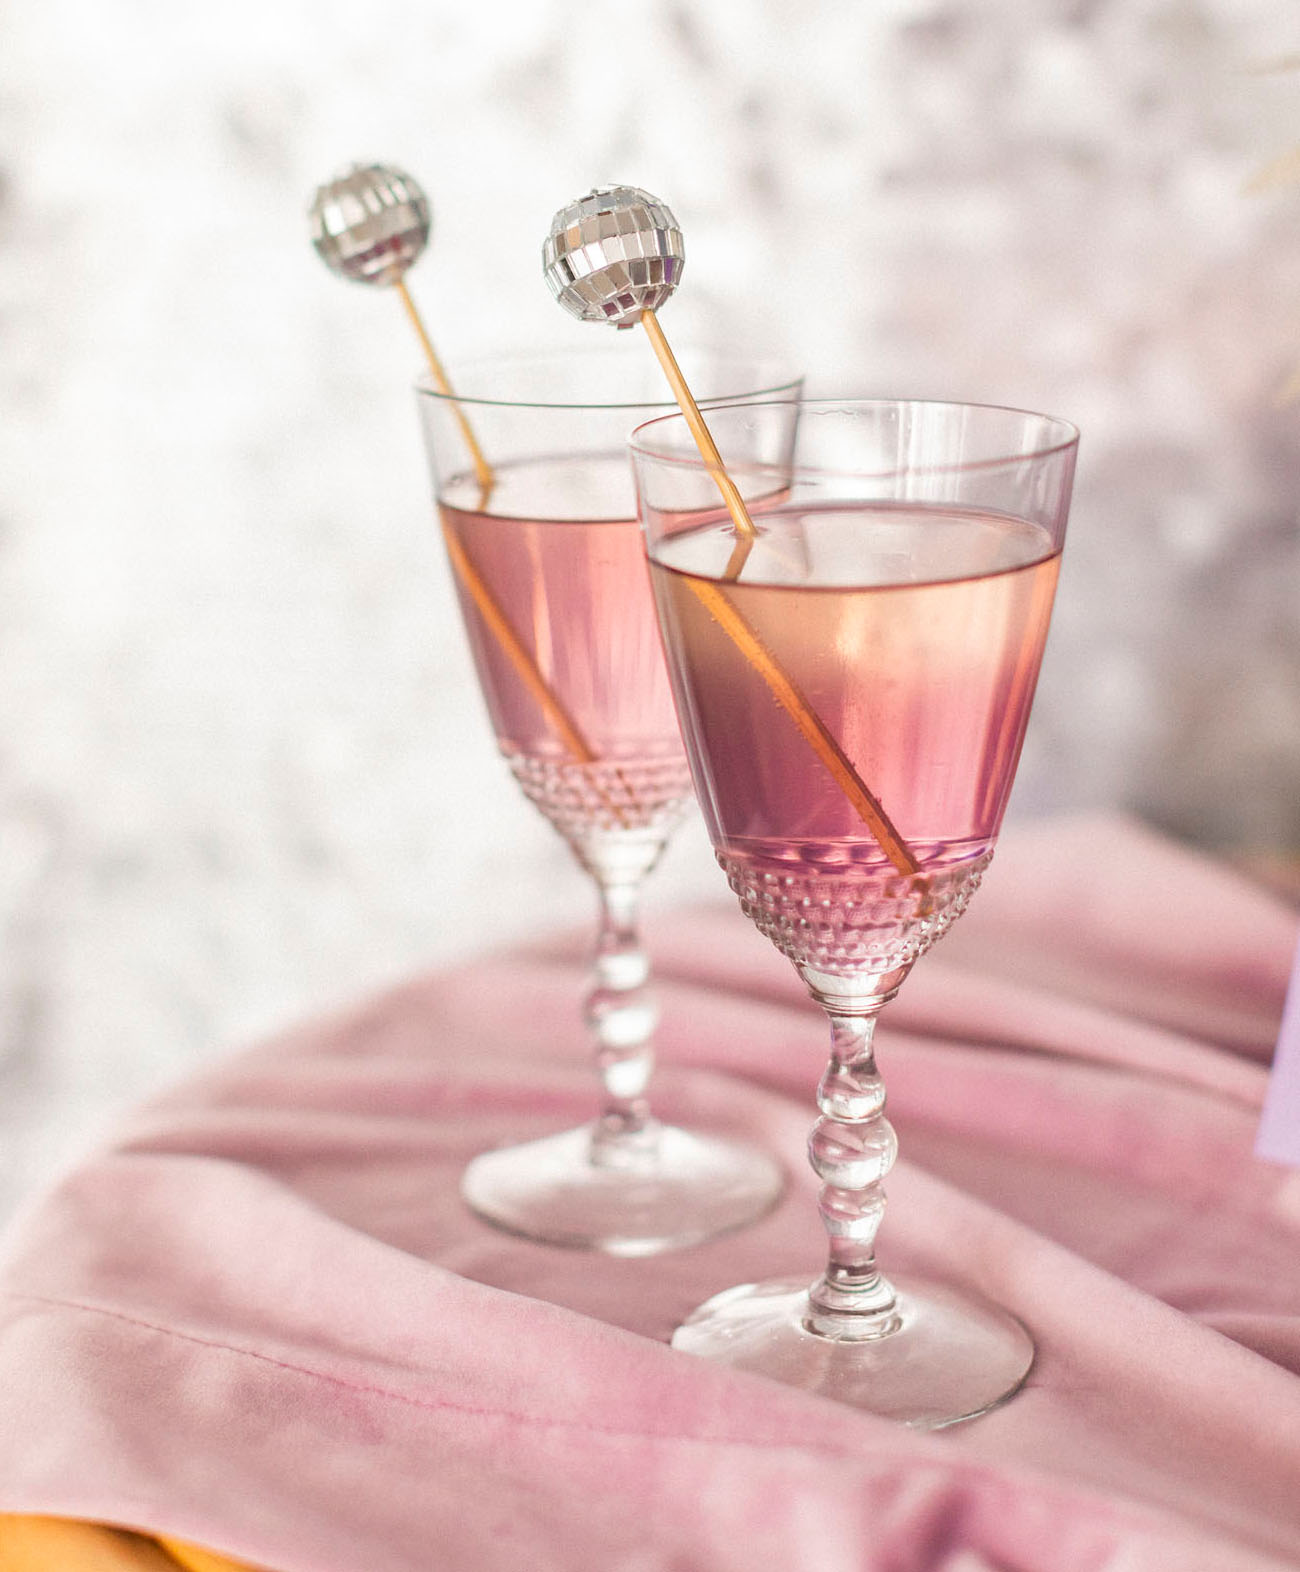 disco ball drink stirrer